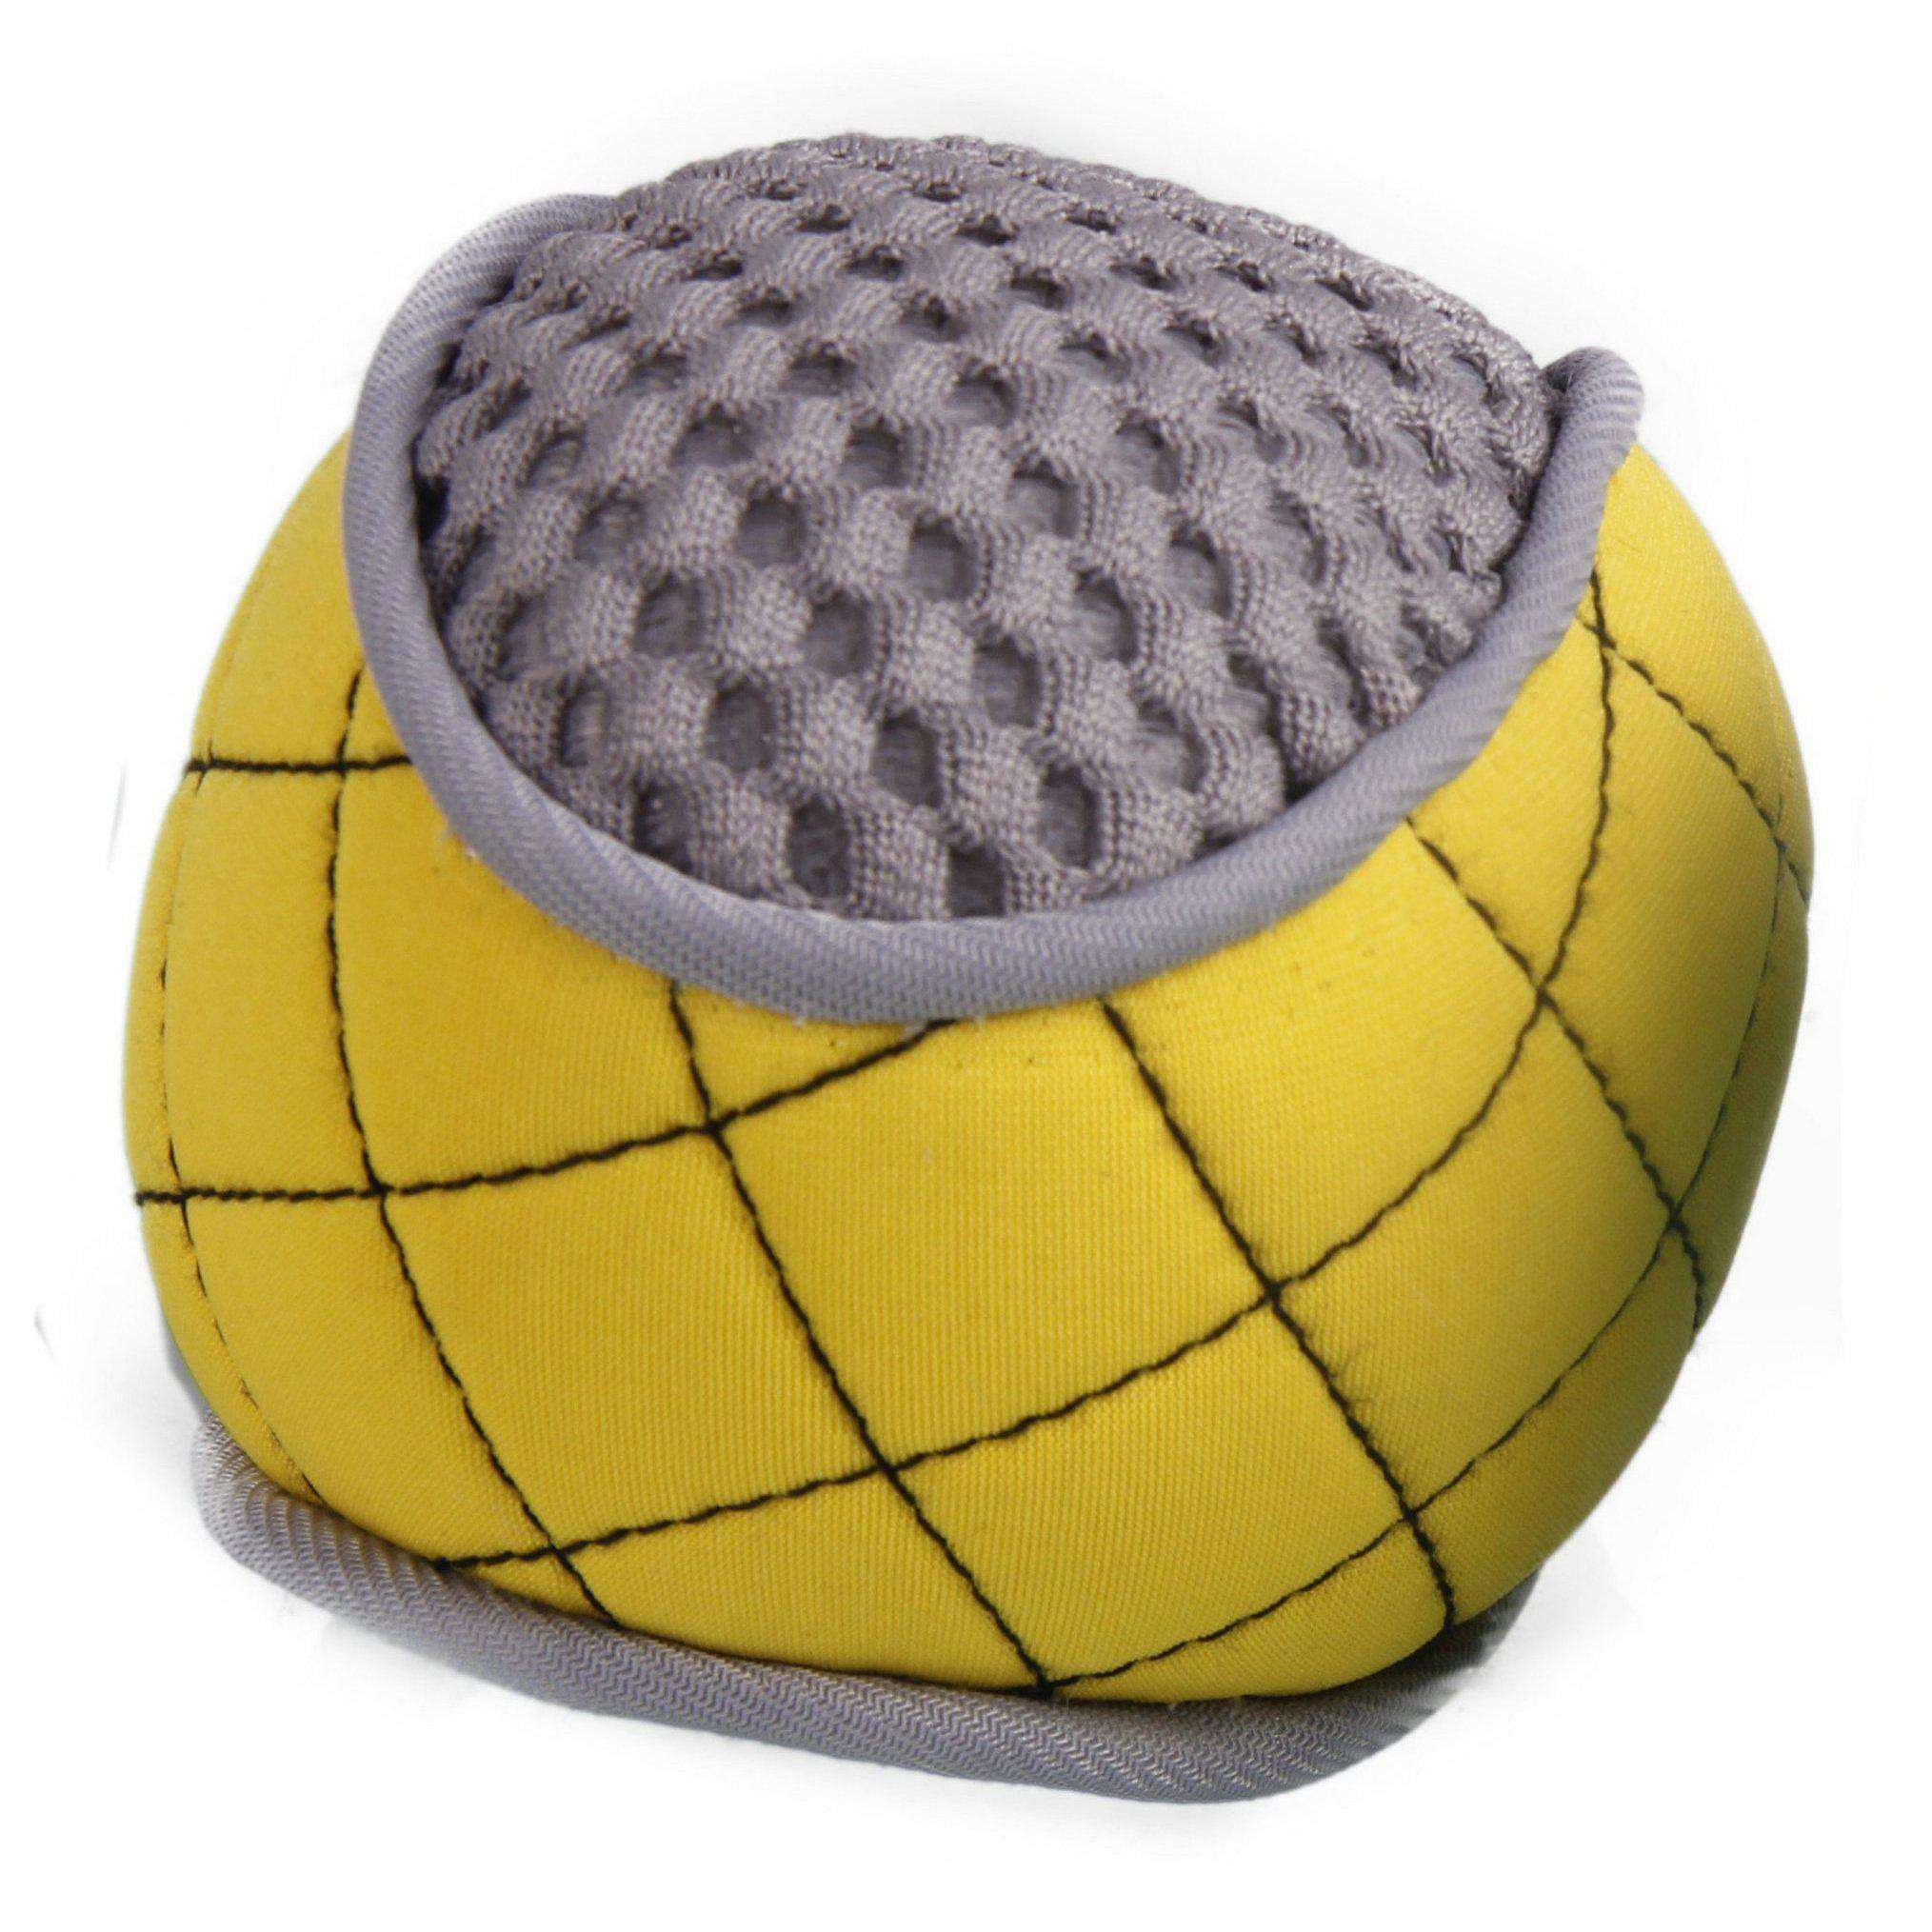 Bark-Active Neoprene Mesh Flotation Ball Fetch Dog Toy-Pet Life-DirtyFurClothing